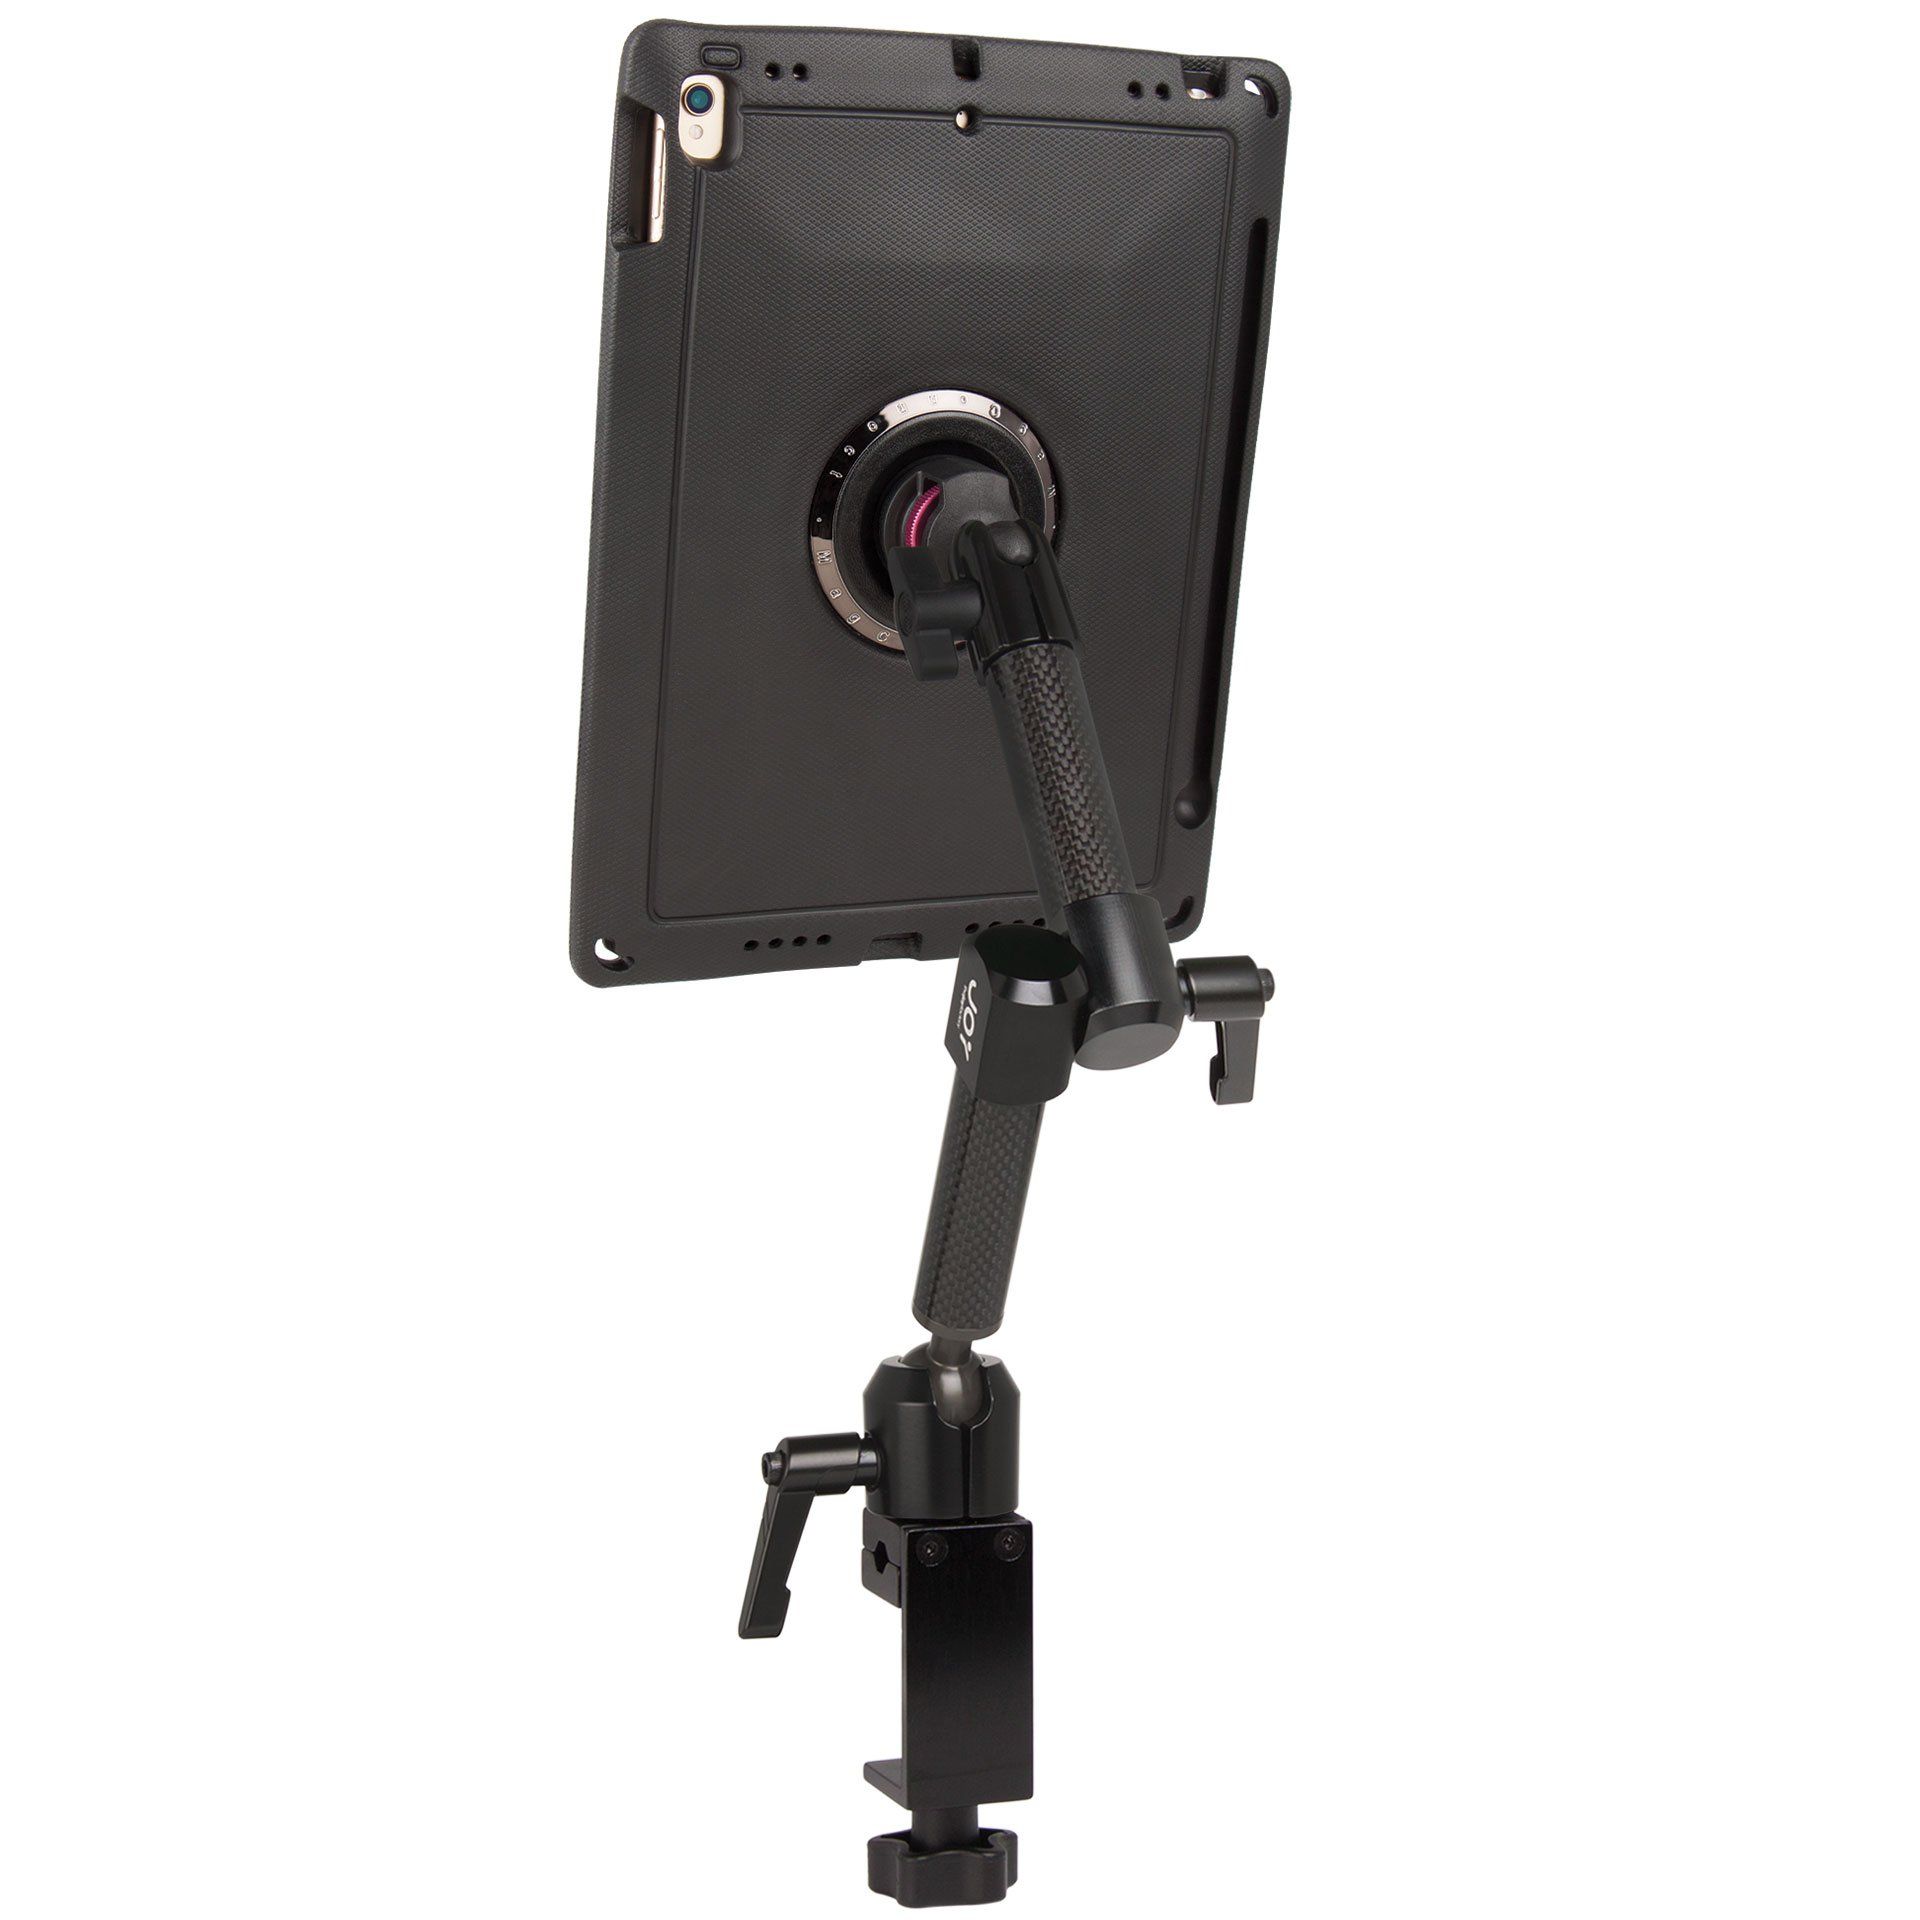 """The Joy Factory MagConnect Carbon Fiber C-Clamp Dual Arm Mount with aXtion Edge M Rugged Case for iPad Pro 10.5"""" and iPad Air 3 (MWA716)"""